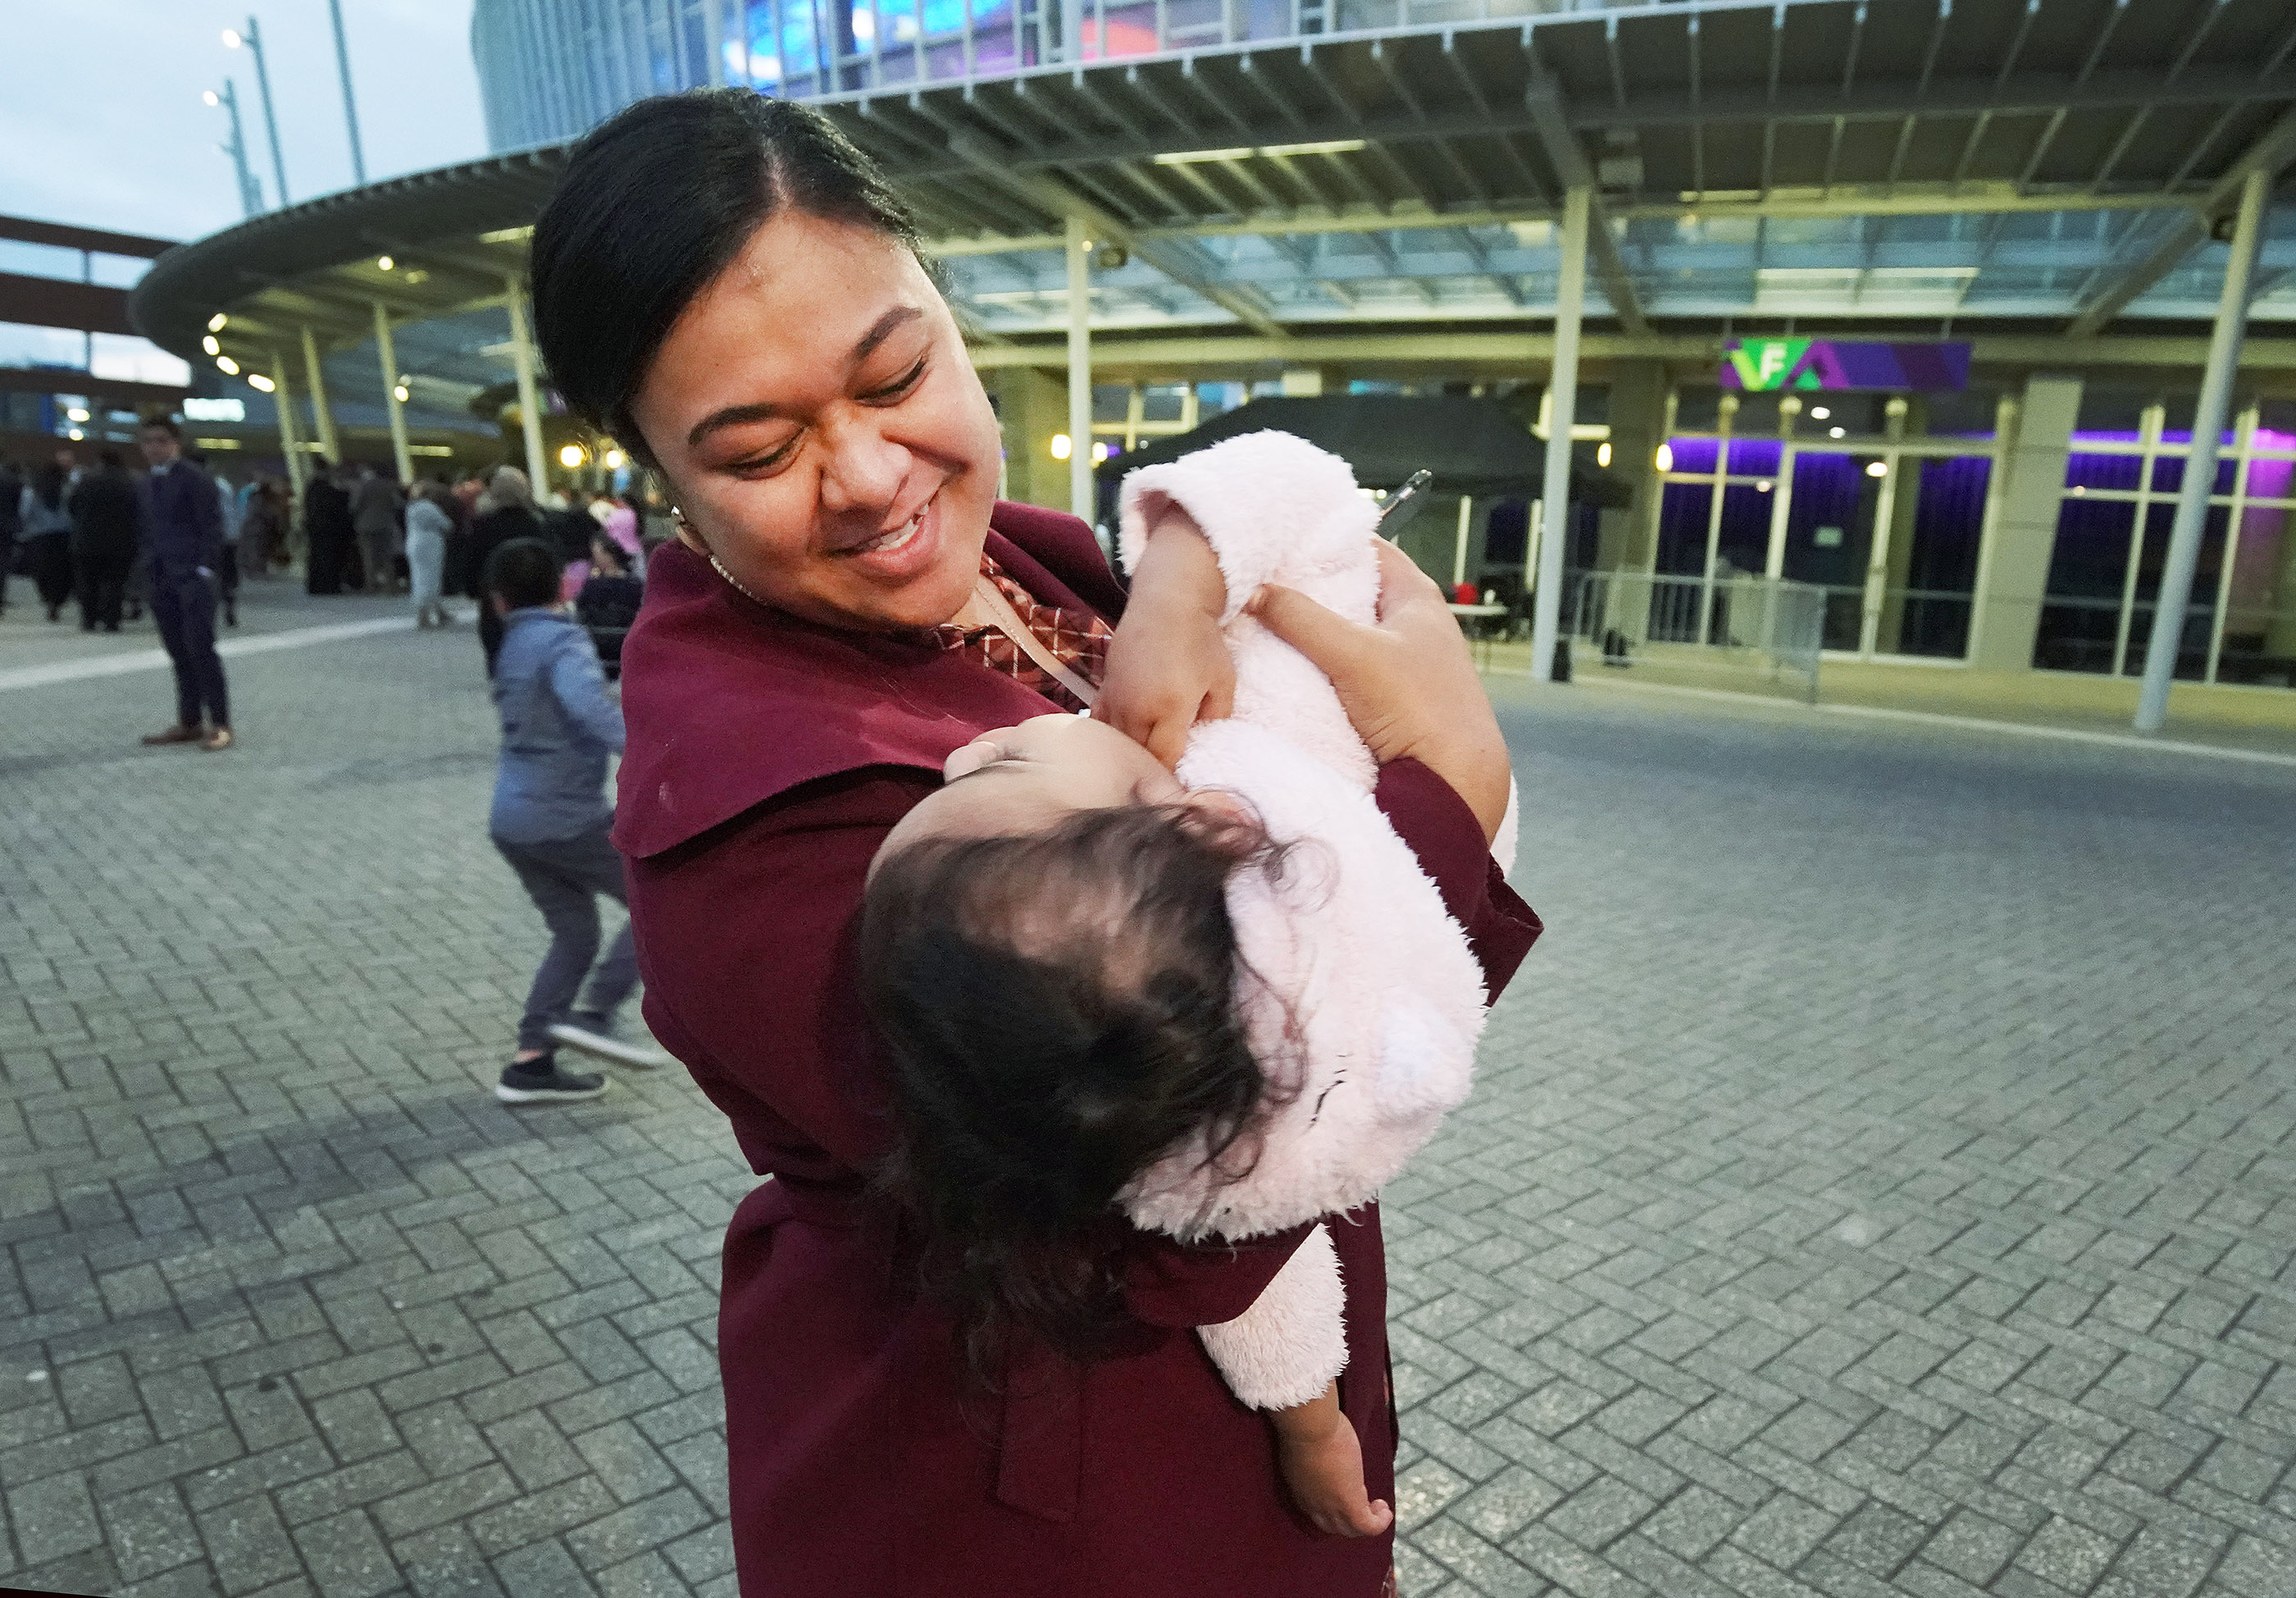 Sylvia Pritchard plays with her niece by the same name — Sylvia Pritchard — prior to a devotional with President Russell M. Nelson of The Church of Jesus Christ of Latter-day Saints at Spark Arena in Auckland, New Zealand on May 21, 2019.